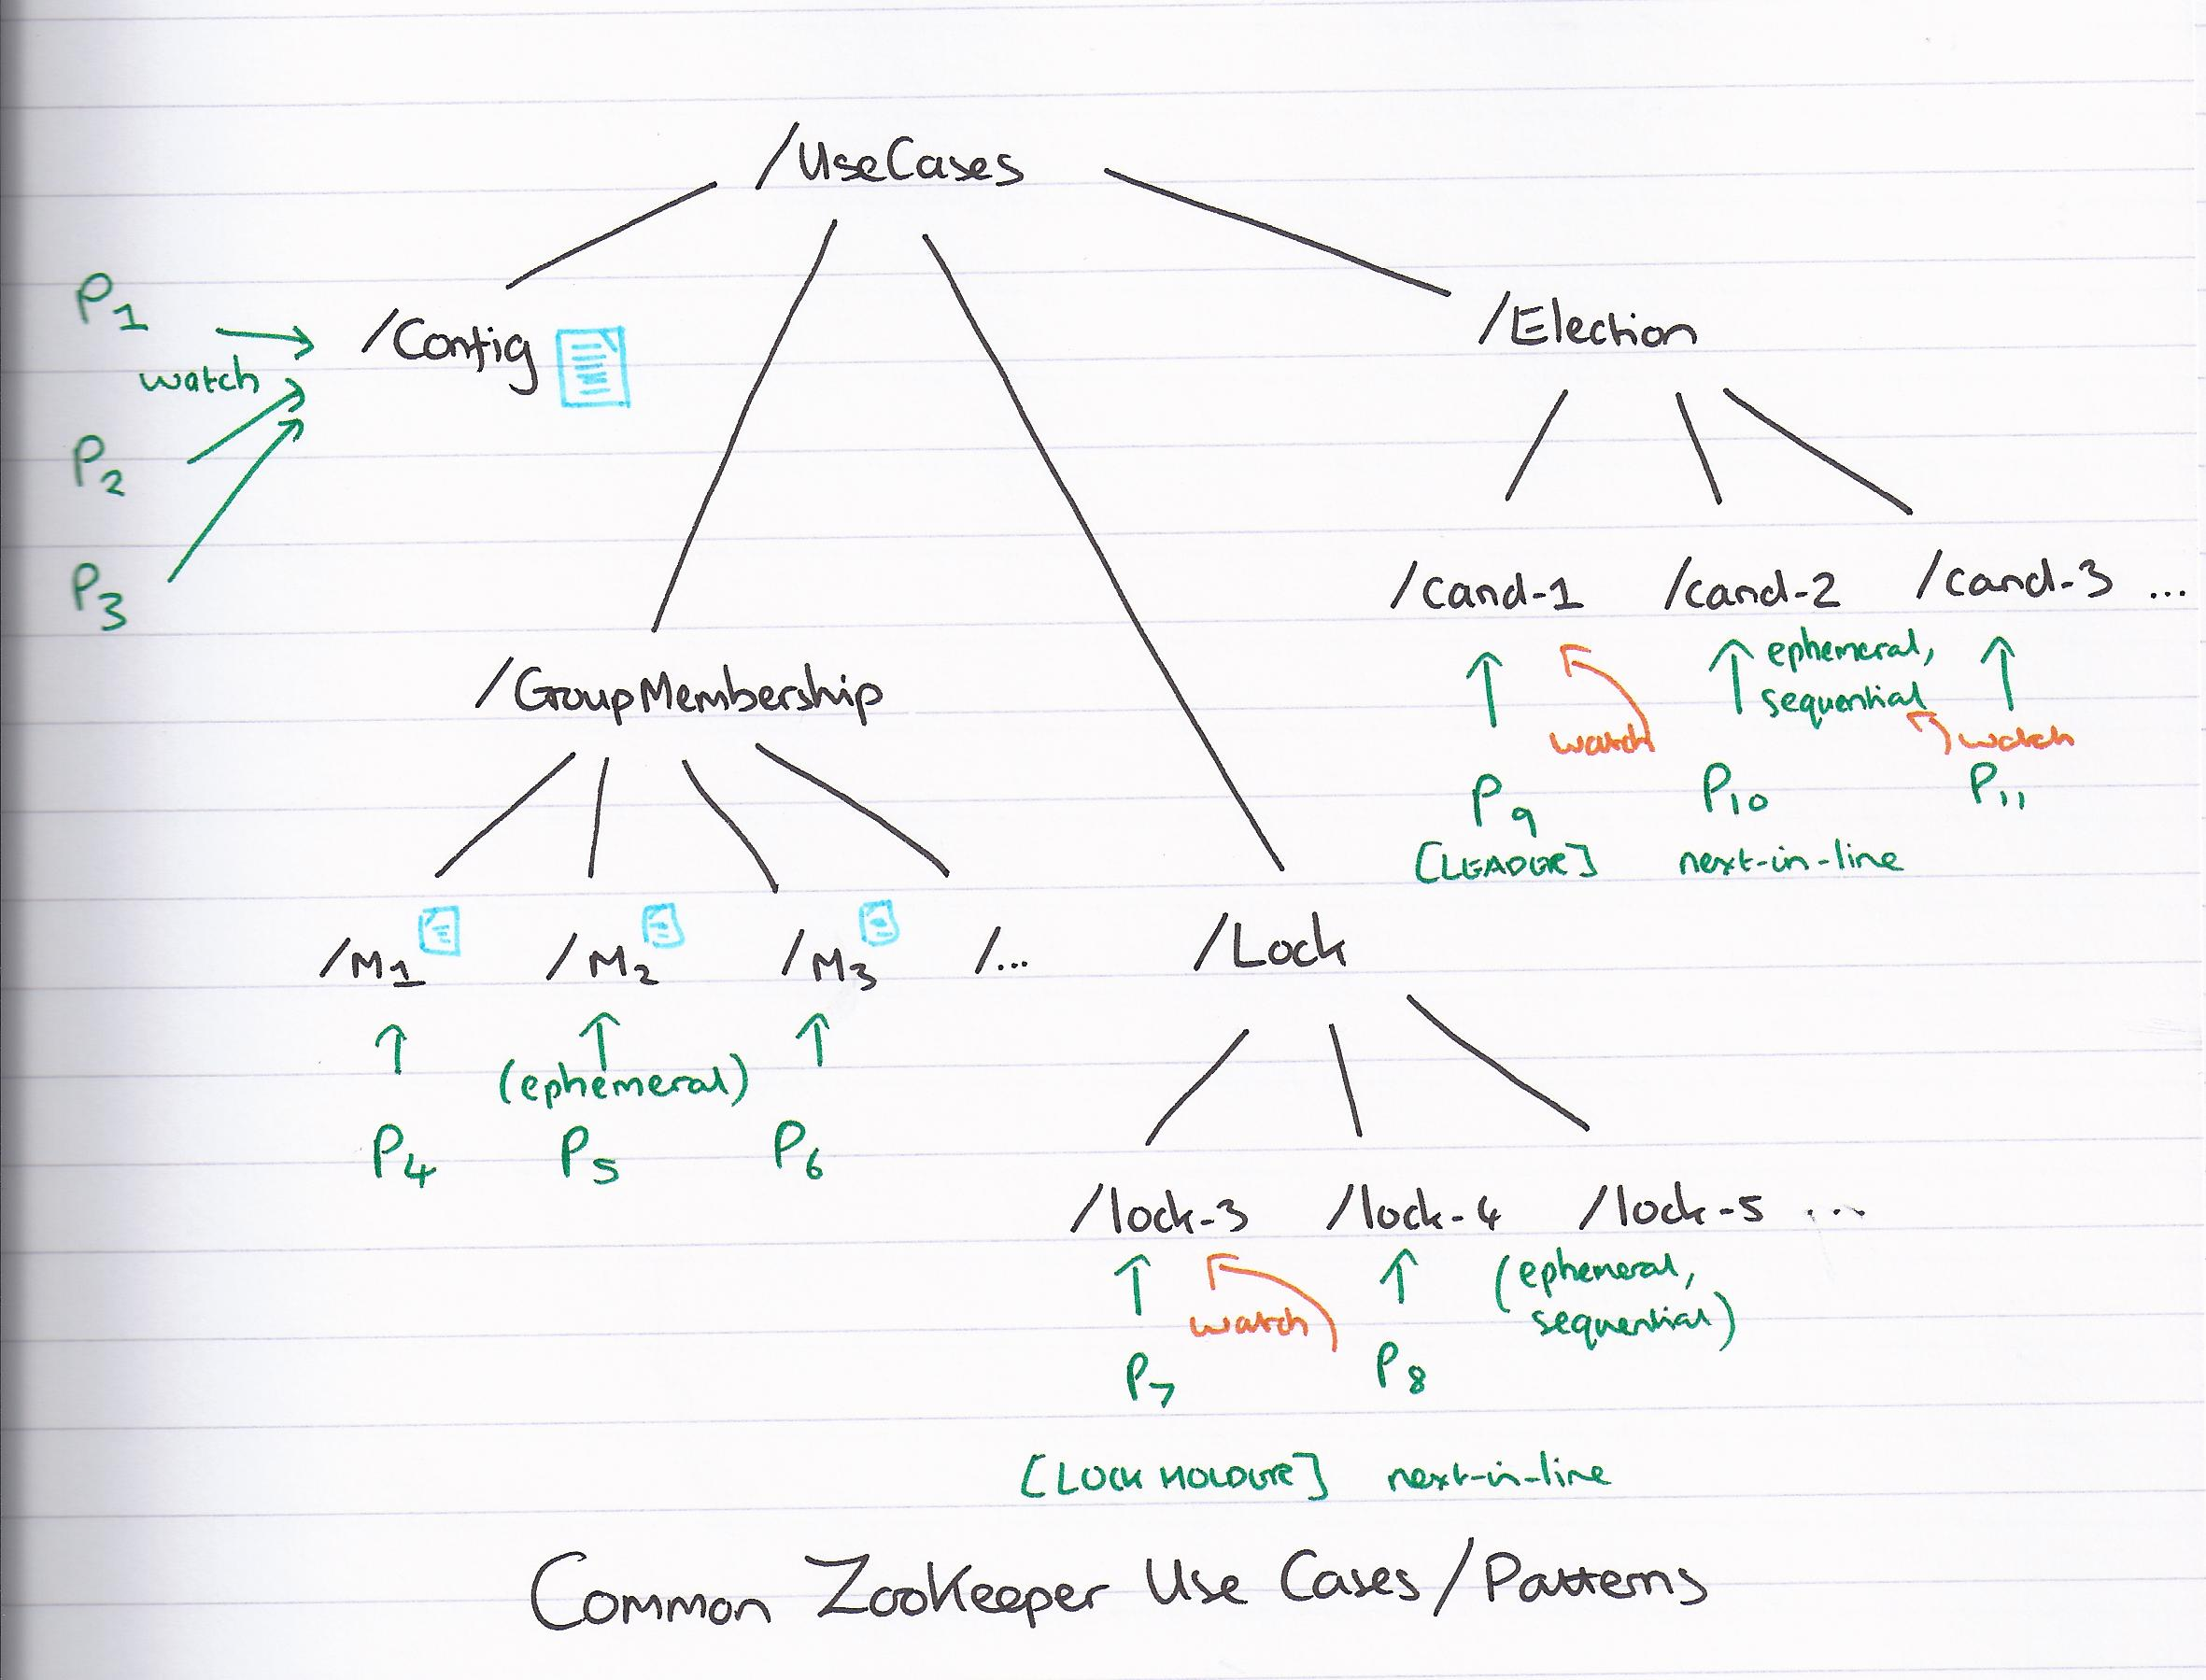 ZooKeeper use case patterns